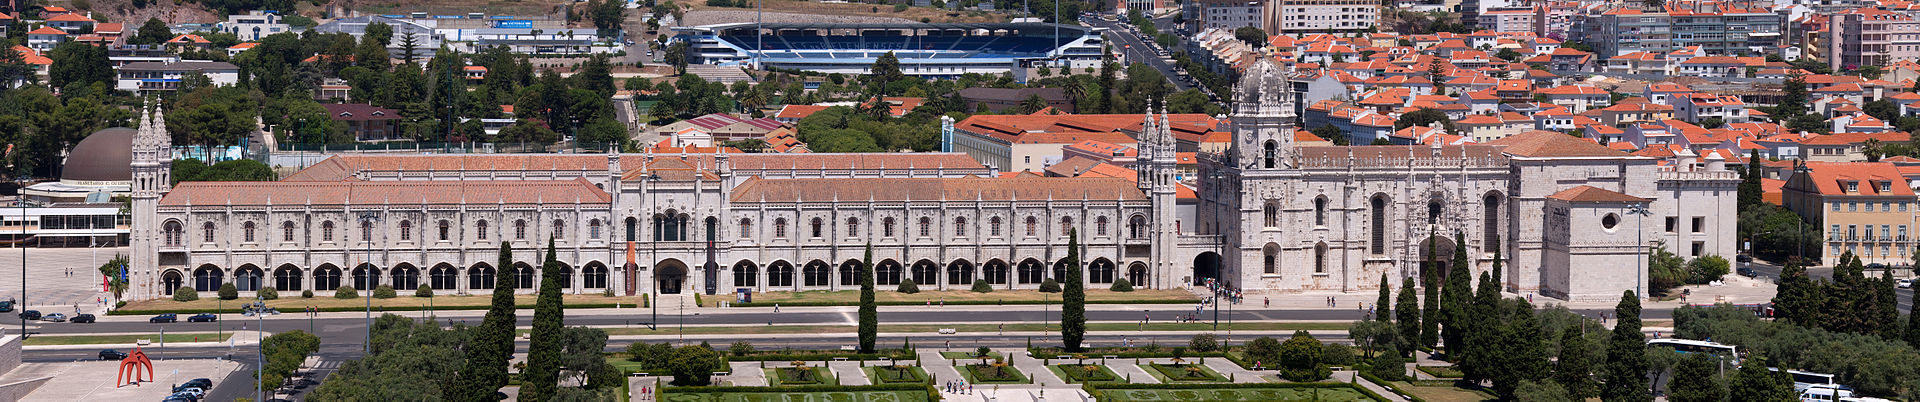 Los Jerónimos Lisbao. Foto de De Massimo Catarinella - Trabajo propio, CC BY 3.0, https://commons.wikimedia.org/w/index.php?curid=7604527